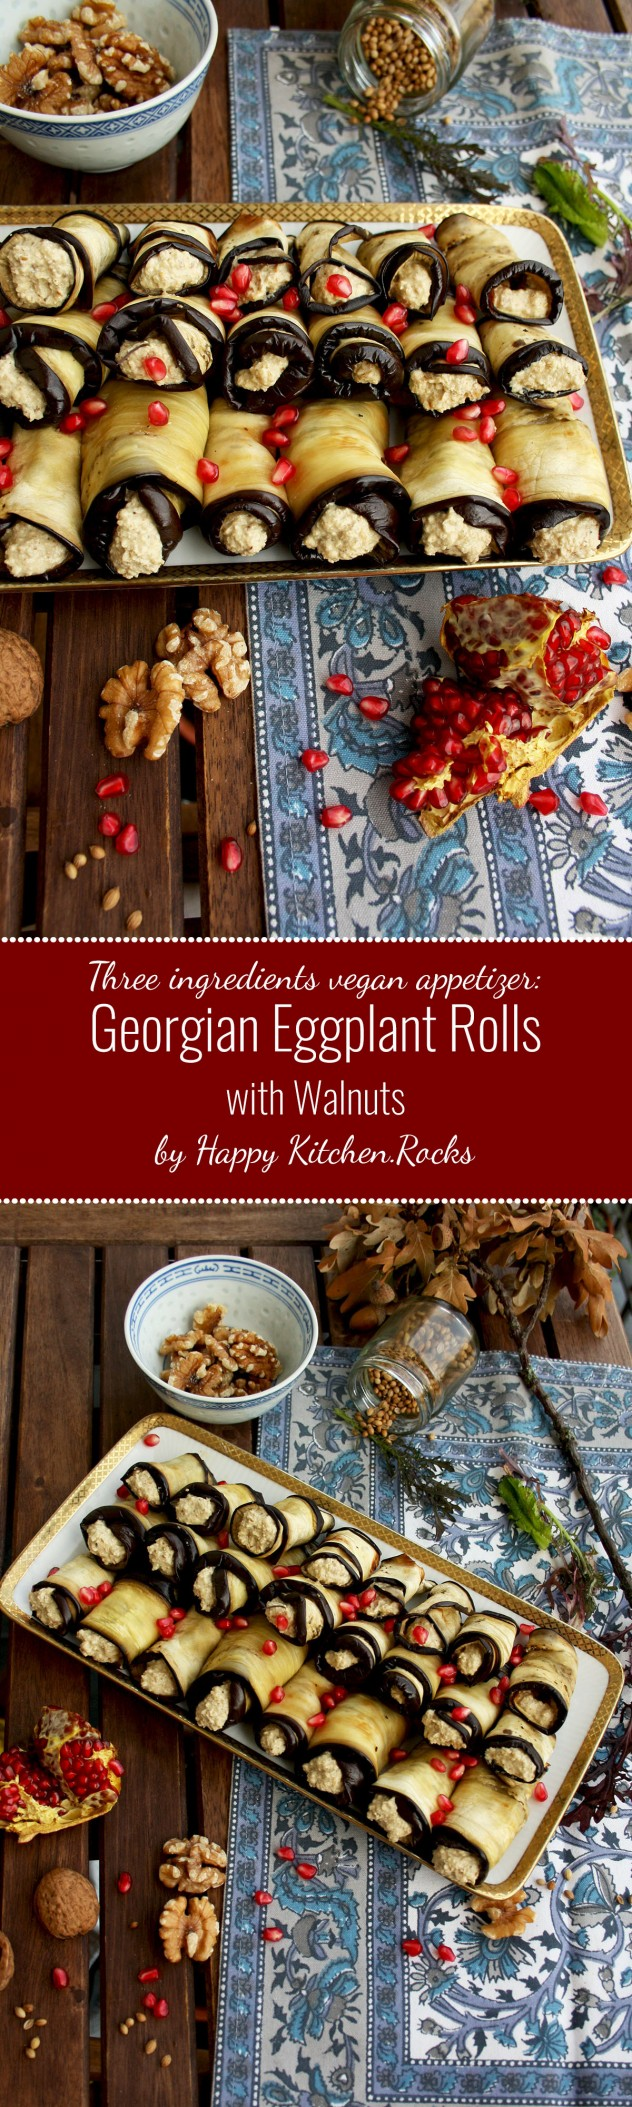 Easy and healthy vegan appetizer: Georgian Eggplant Rolls with Walnut Filling. You only need three ingredients and a bit of spices to make it!